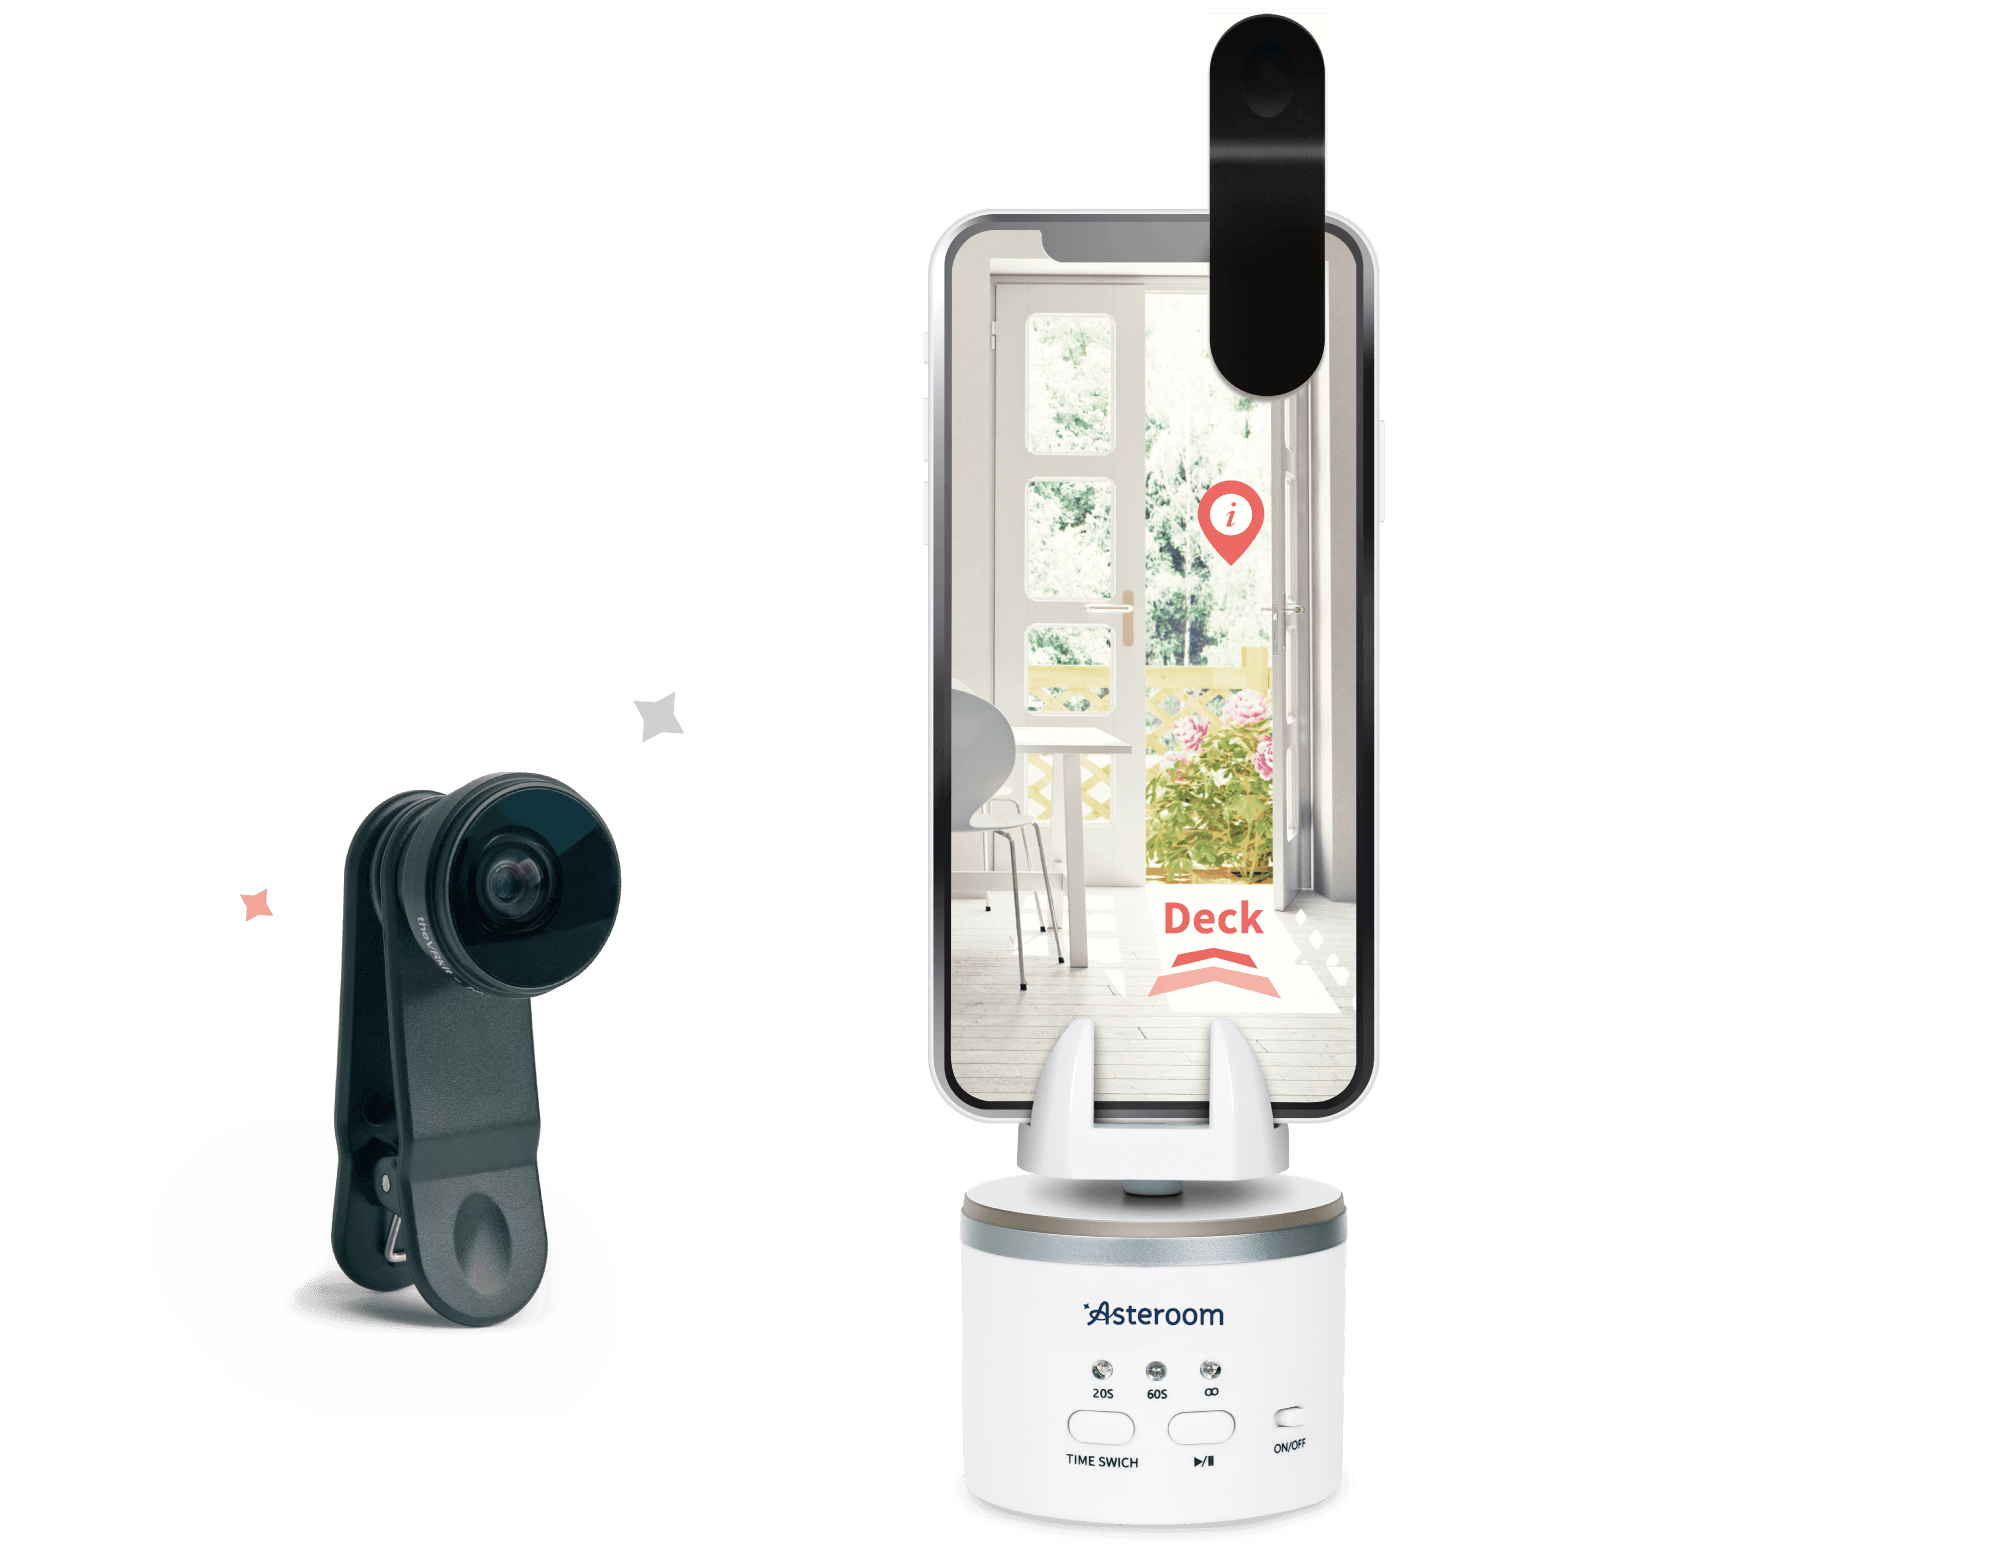 Attach Asteroom's Pano Kit on your phone to take 360-degree panoramas with your phone's camera lens.